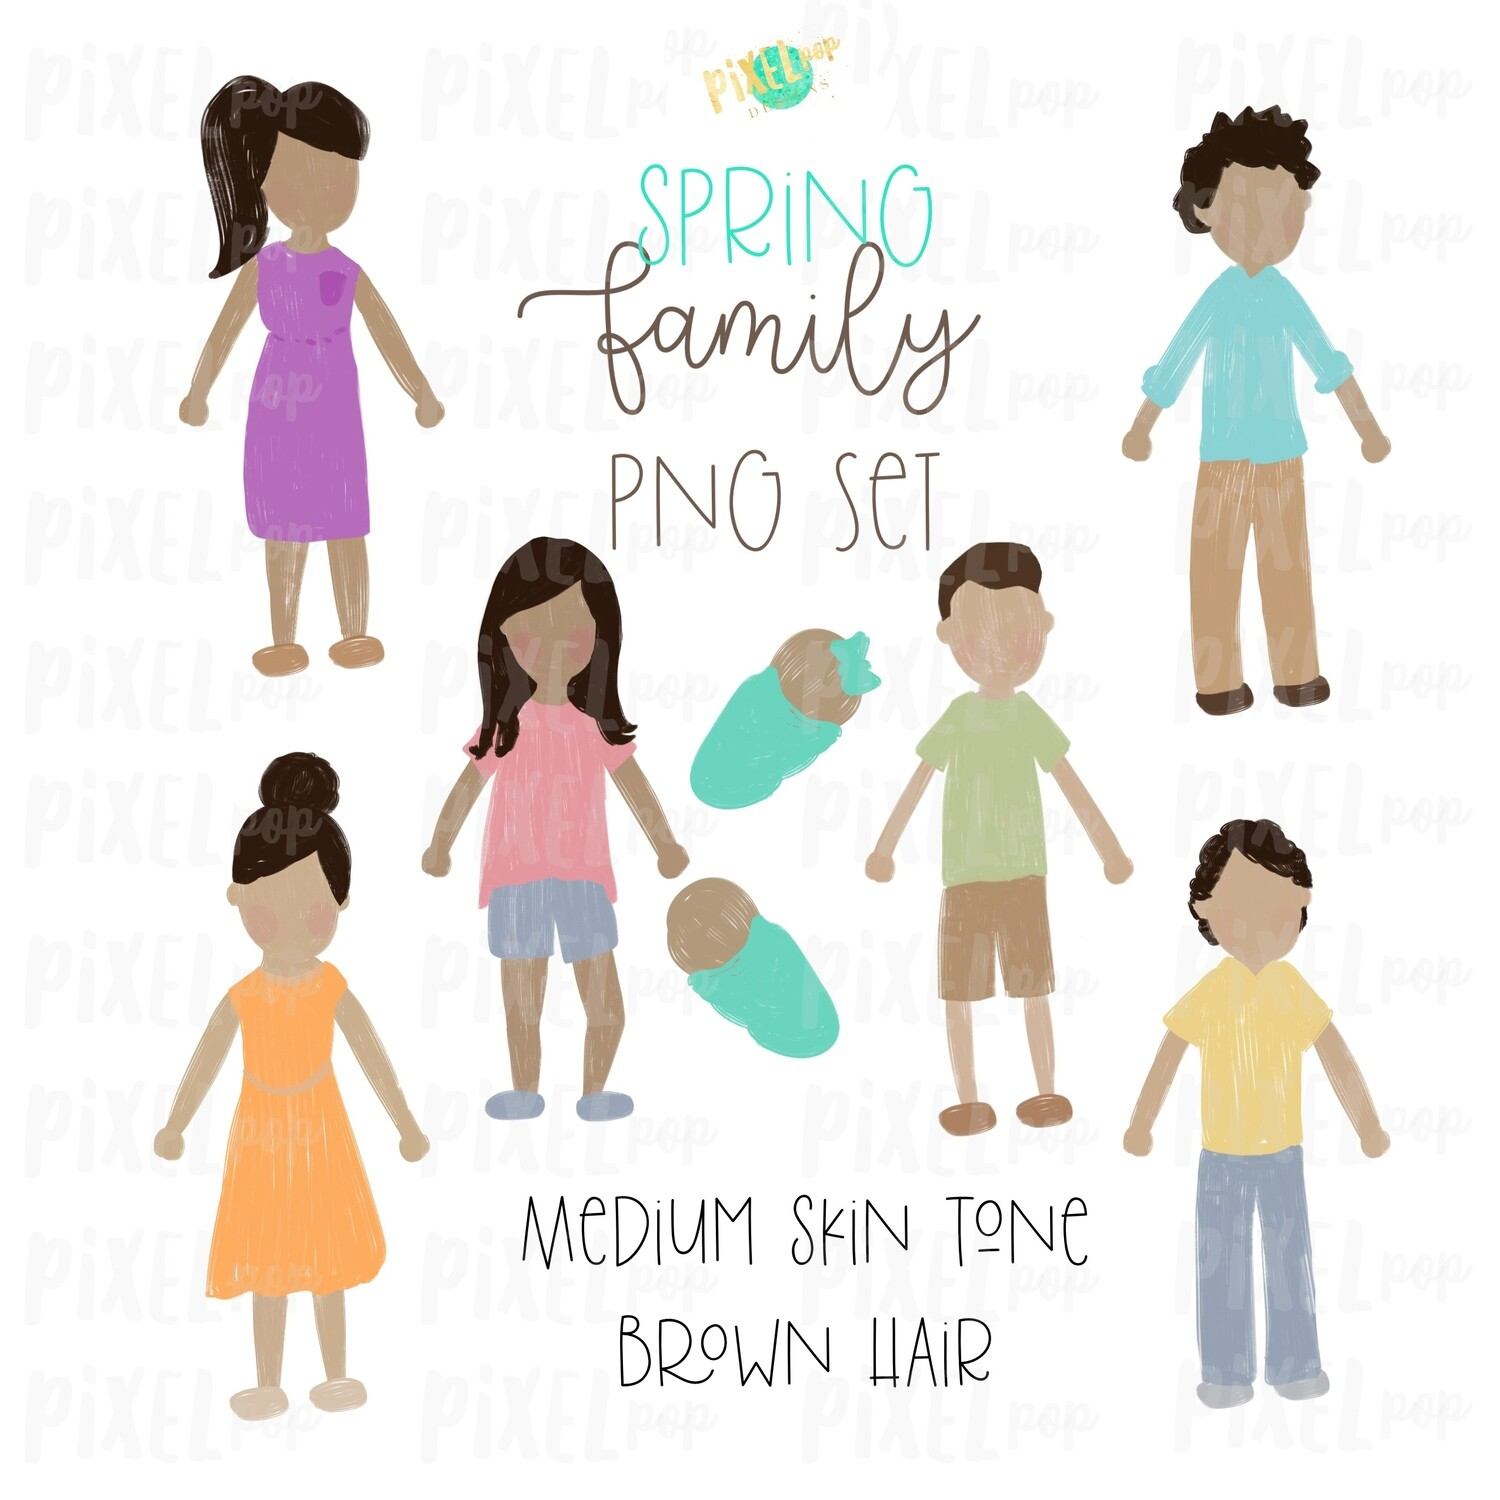 SPRING Medium Skin Brown Hair Stick People Figure Family PNG Sublimation   Family Ornament   Family Portrait Images   Digital Download